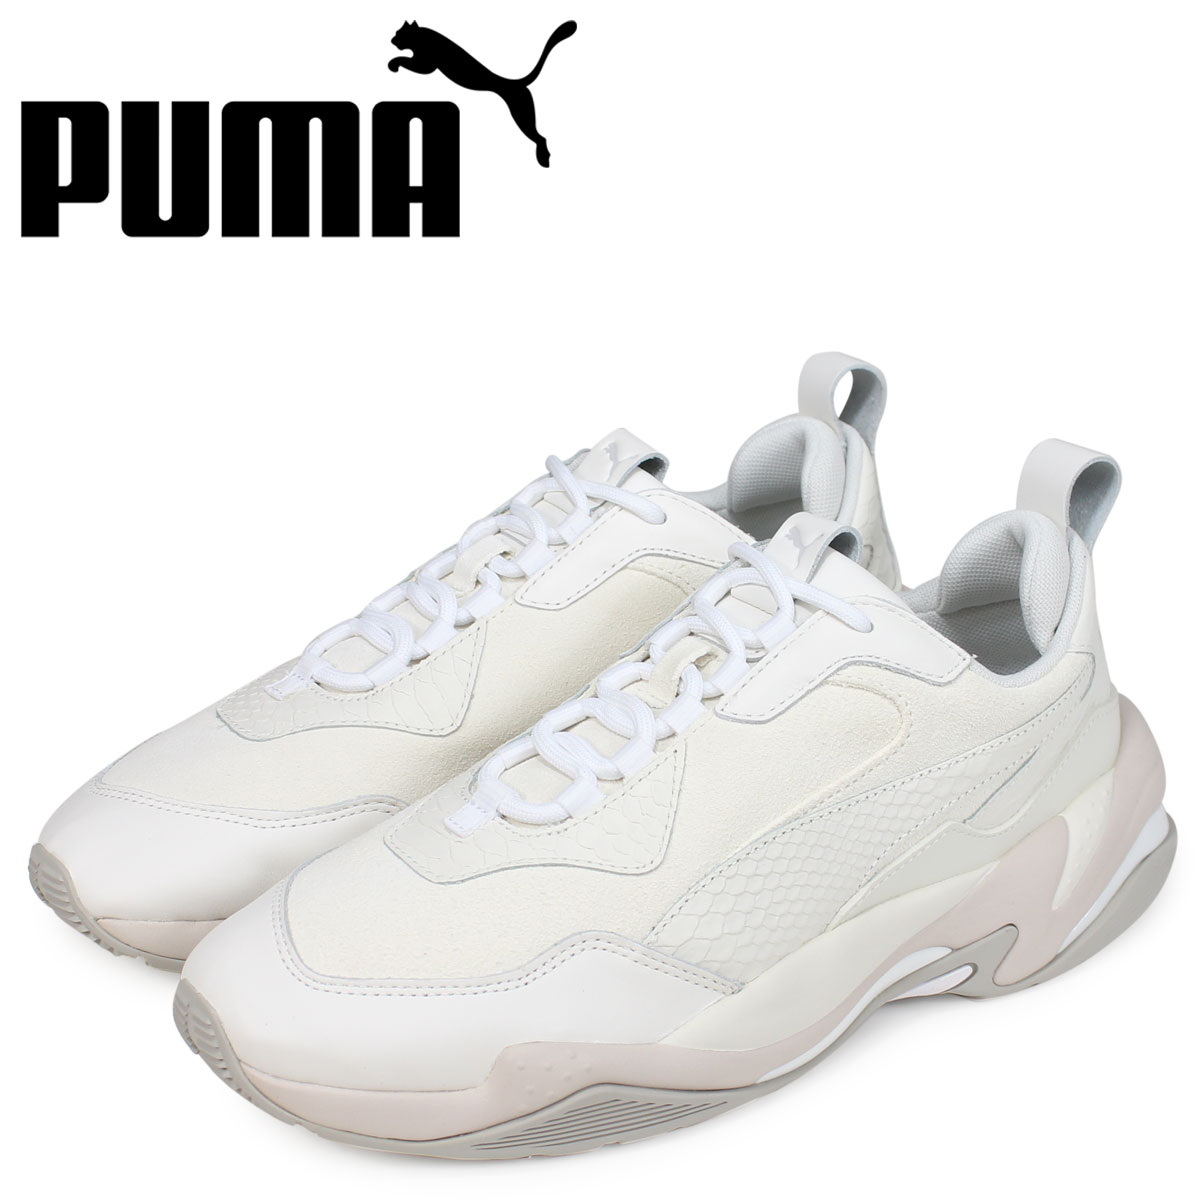 the best attitude 3f65a 9931f PUMA Puma sander dessert sneakers men THUNDER DESERT white white 367,997-03